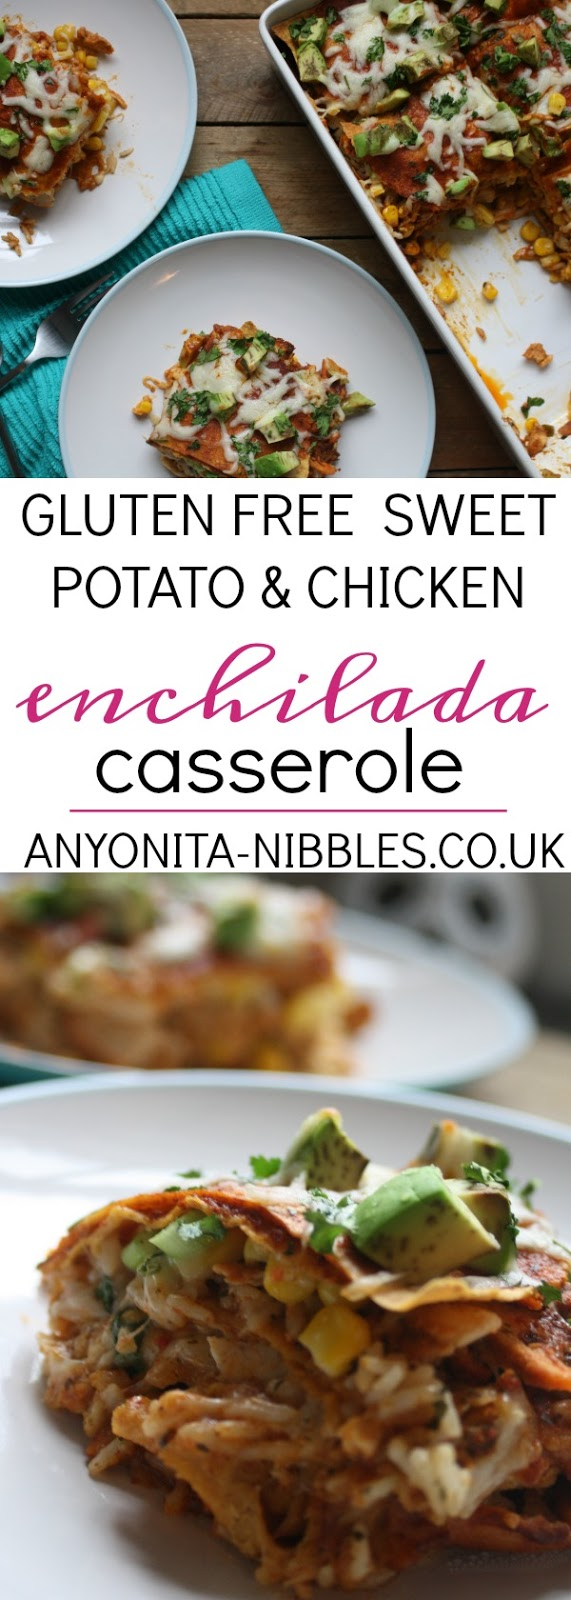 Gluten Free Sweet Potato and Chicken Enchilada Cassserole by Anyonita Nibbles